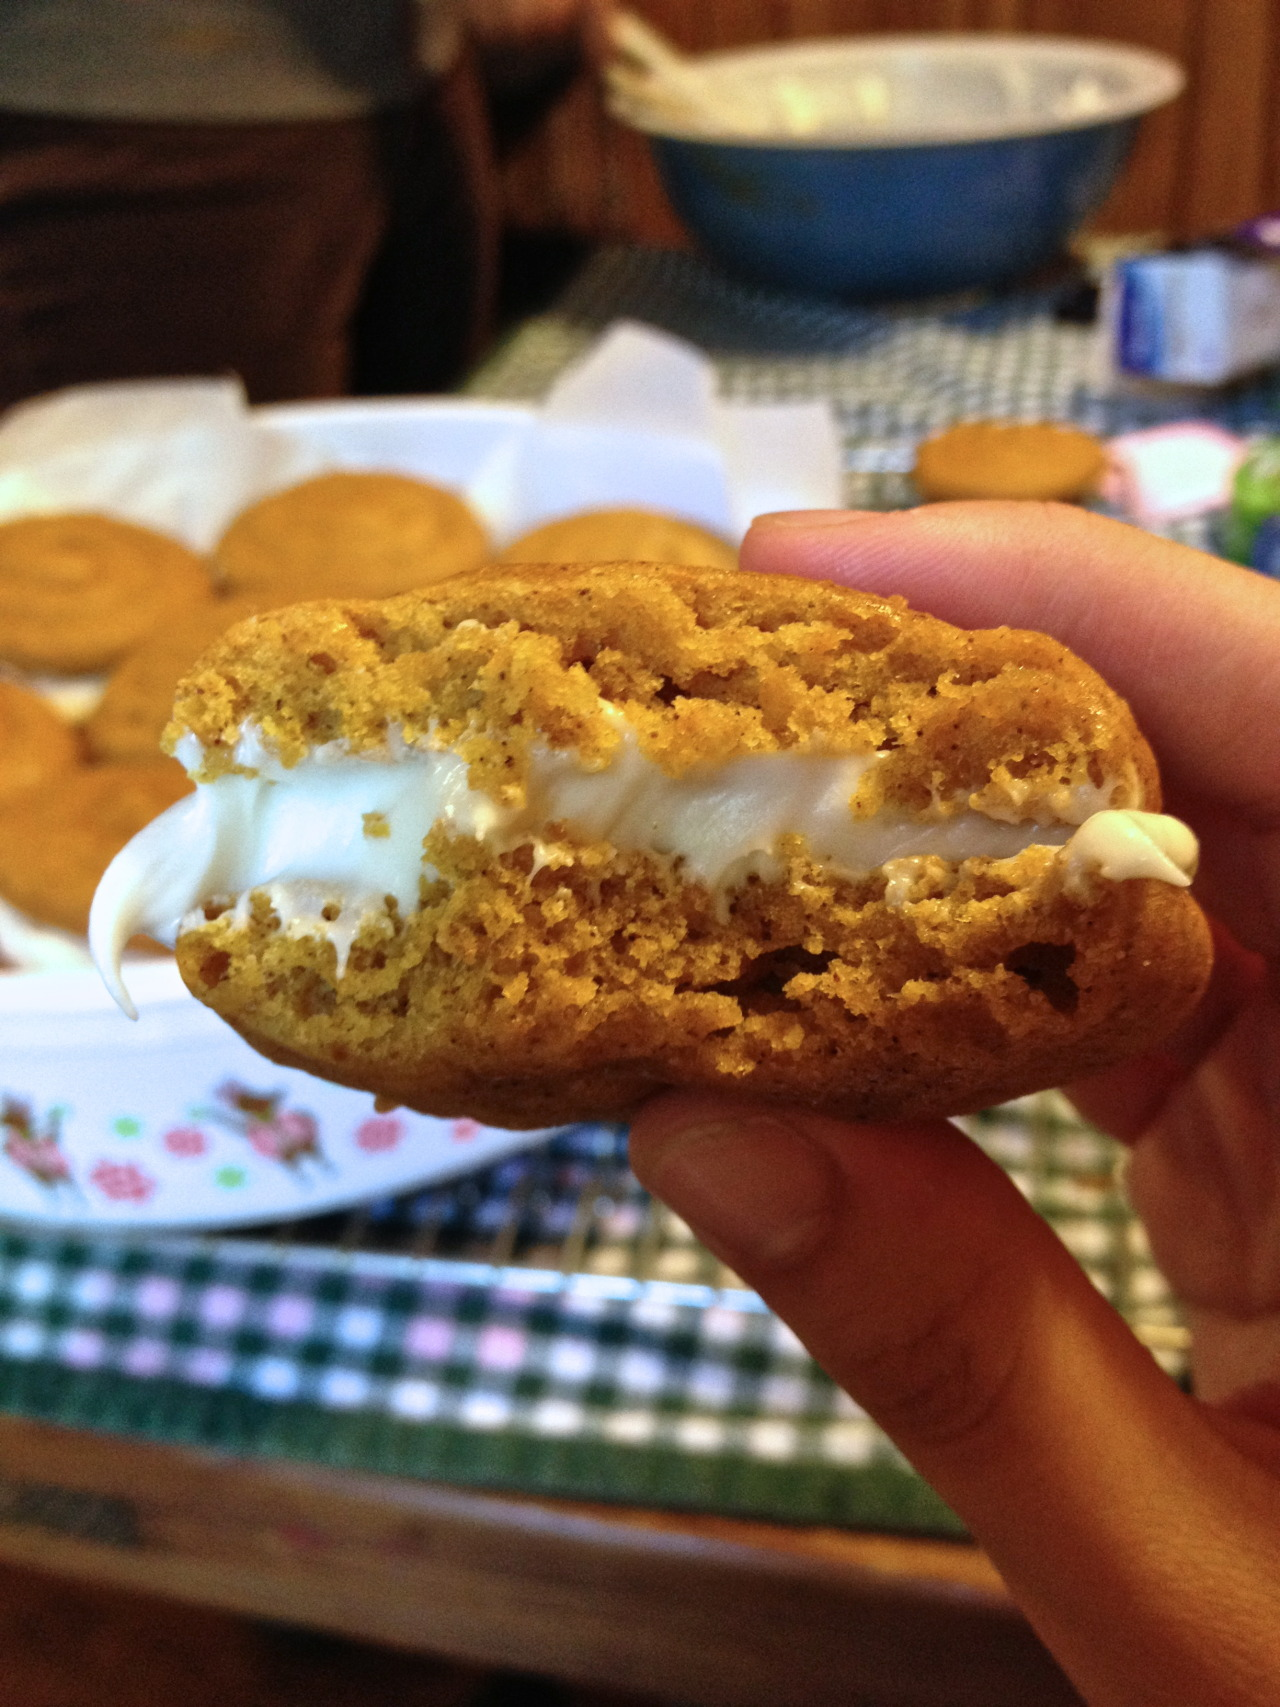 literally the most popular thing I have EVER made:Pumpkin Whoopie Pies with Cream Cheese Filling. http://dreamydesserts.blogspot.com/2008/10/pumpkin-whoopie-pies-with-creamy-cream.html